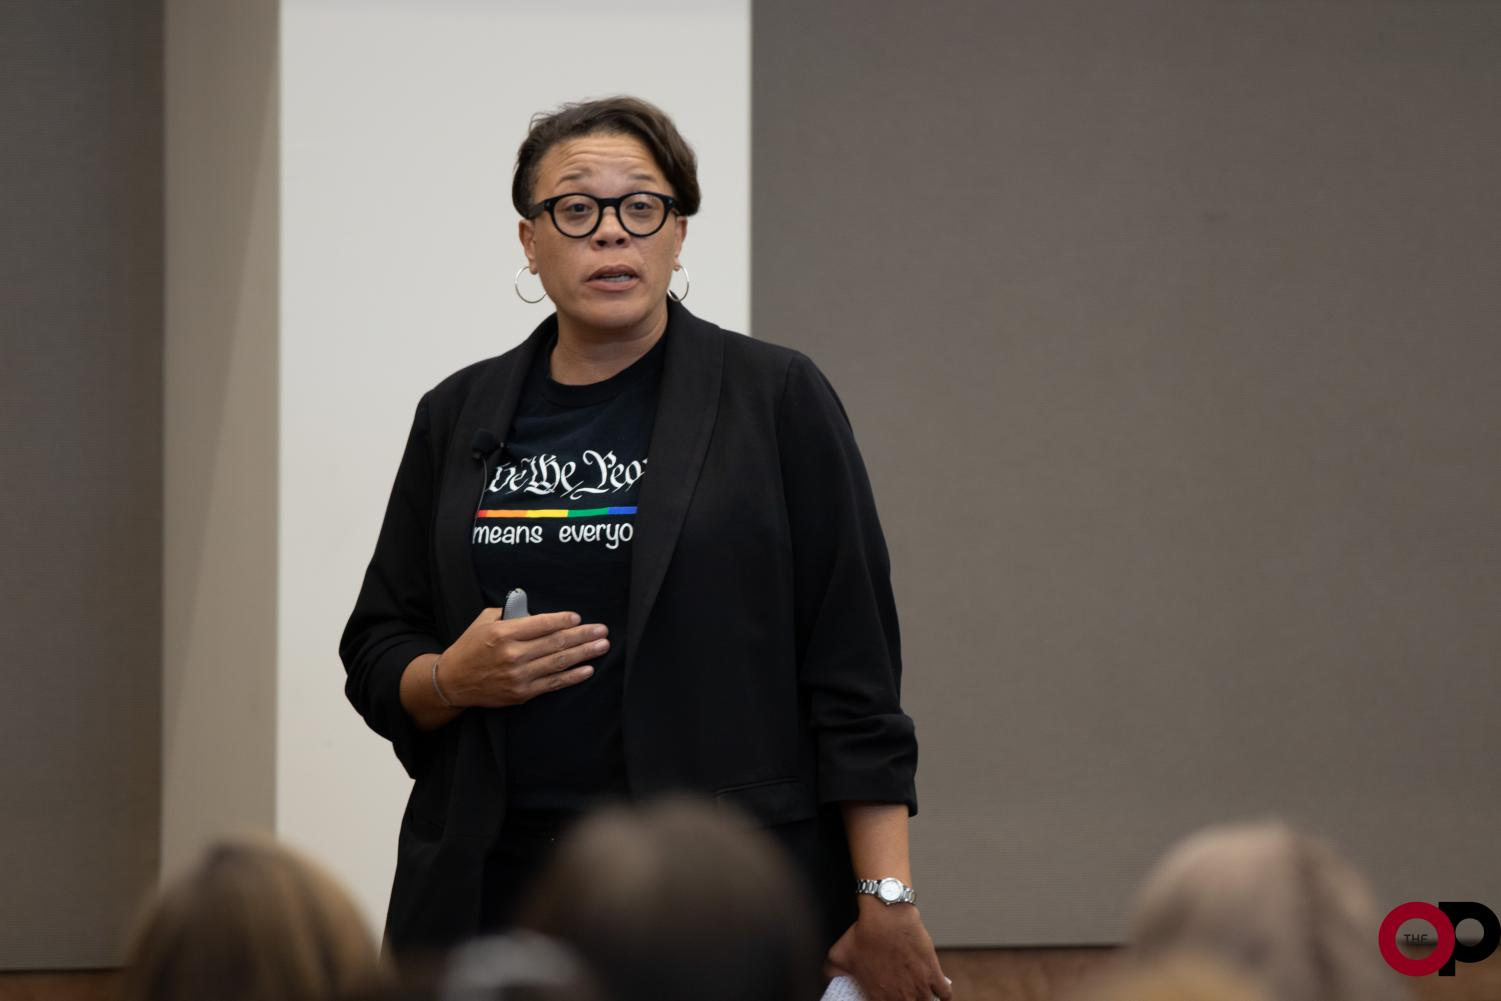 Trina Scott, VP of Diversity and Inclusion at Rocket Mortgage by Quicken Loans, speaks to students about moving ideas into words and actions in the modern workplace.